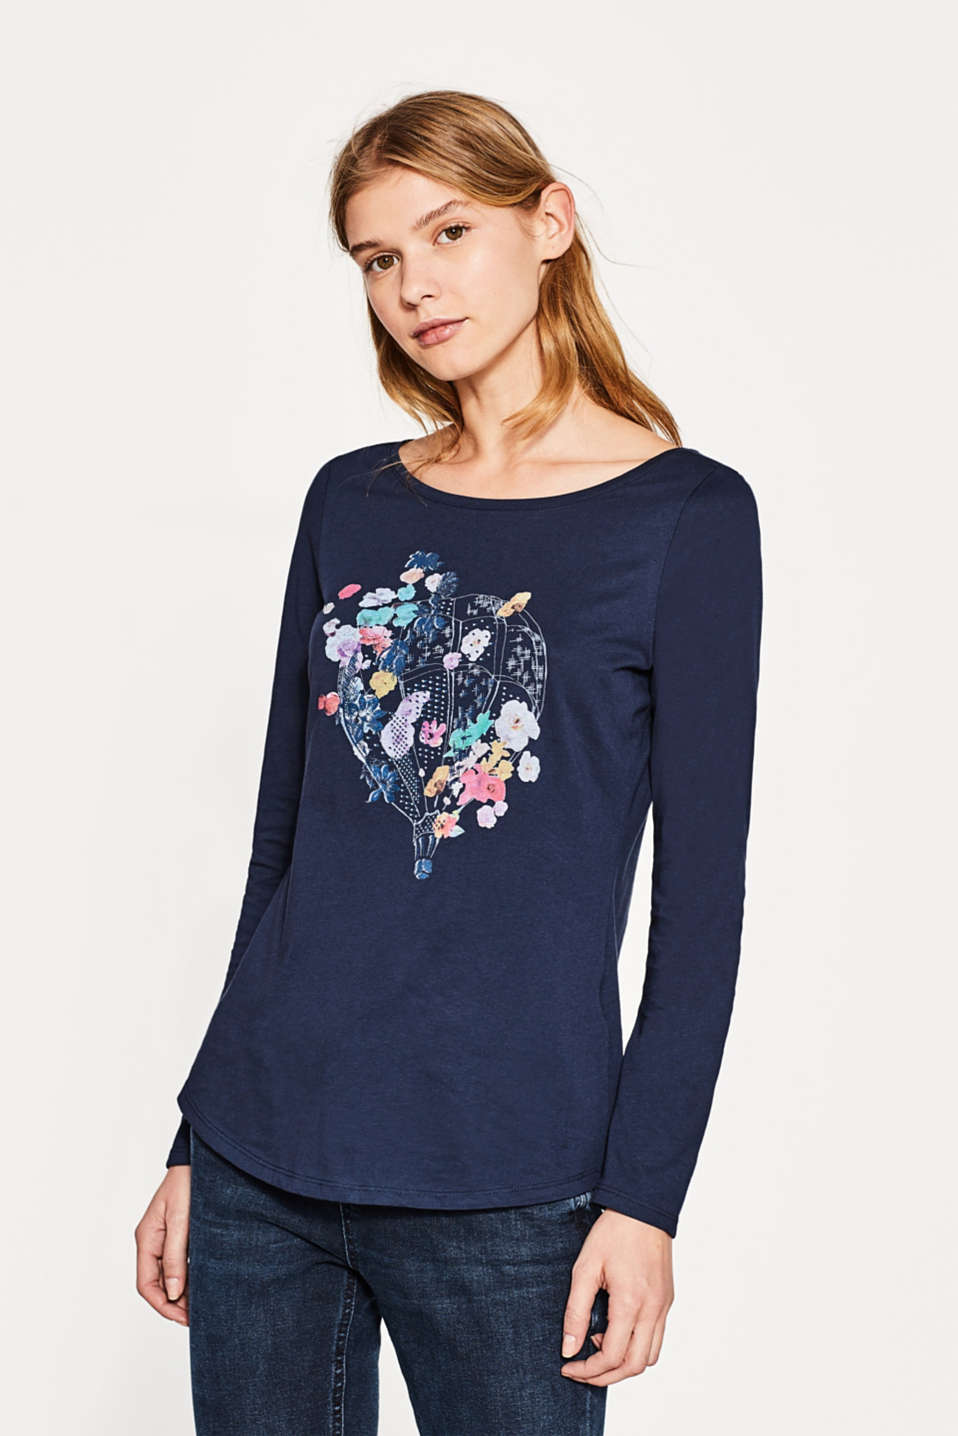 Esprit - Long sleeve printed top, 100% cotton